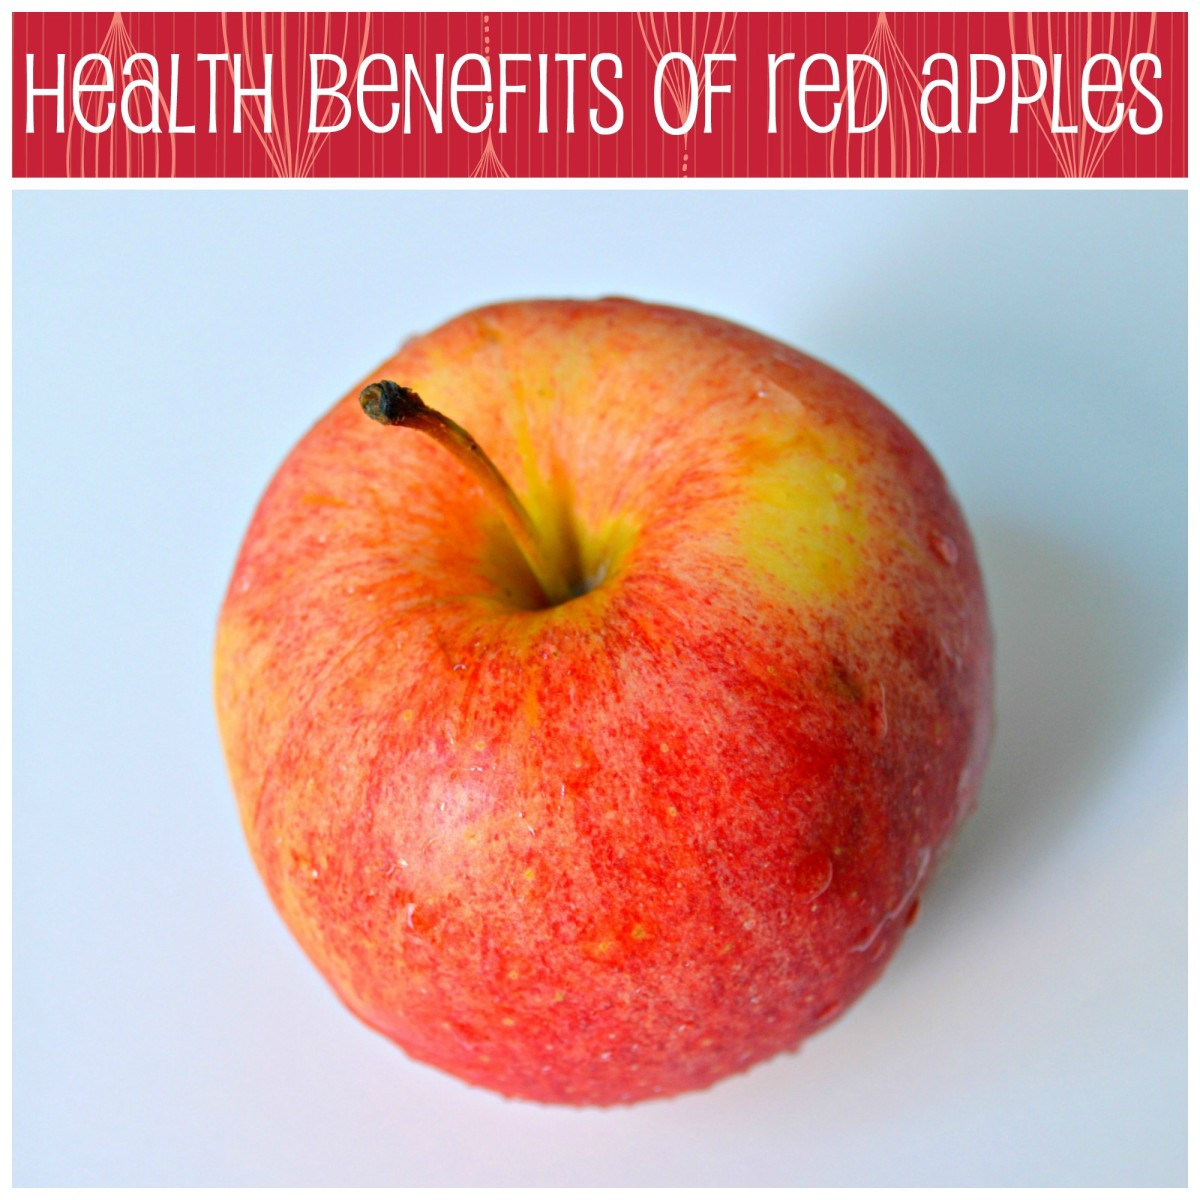 Health Benefits of Red Apples